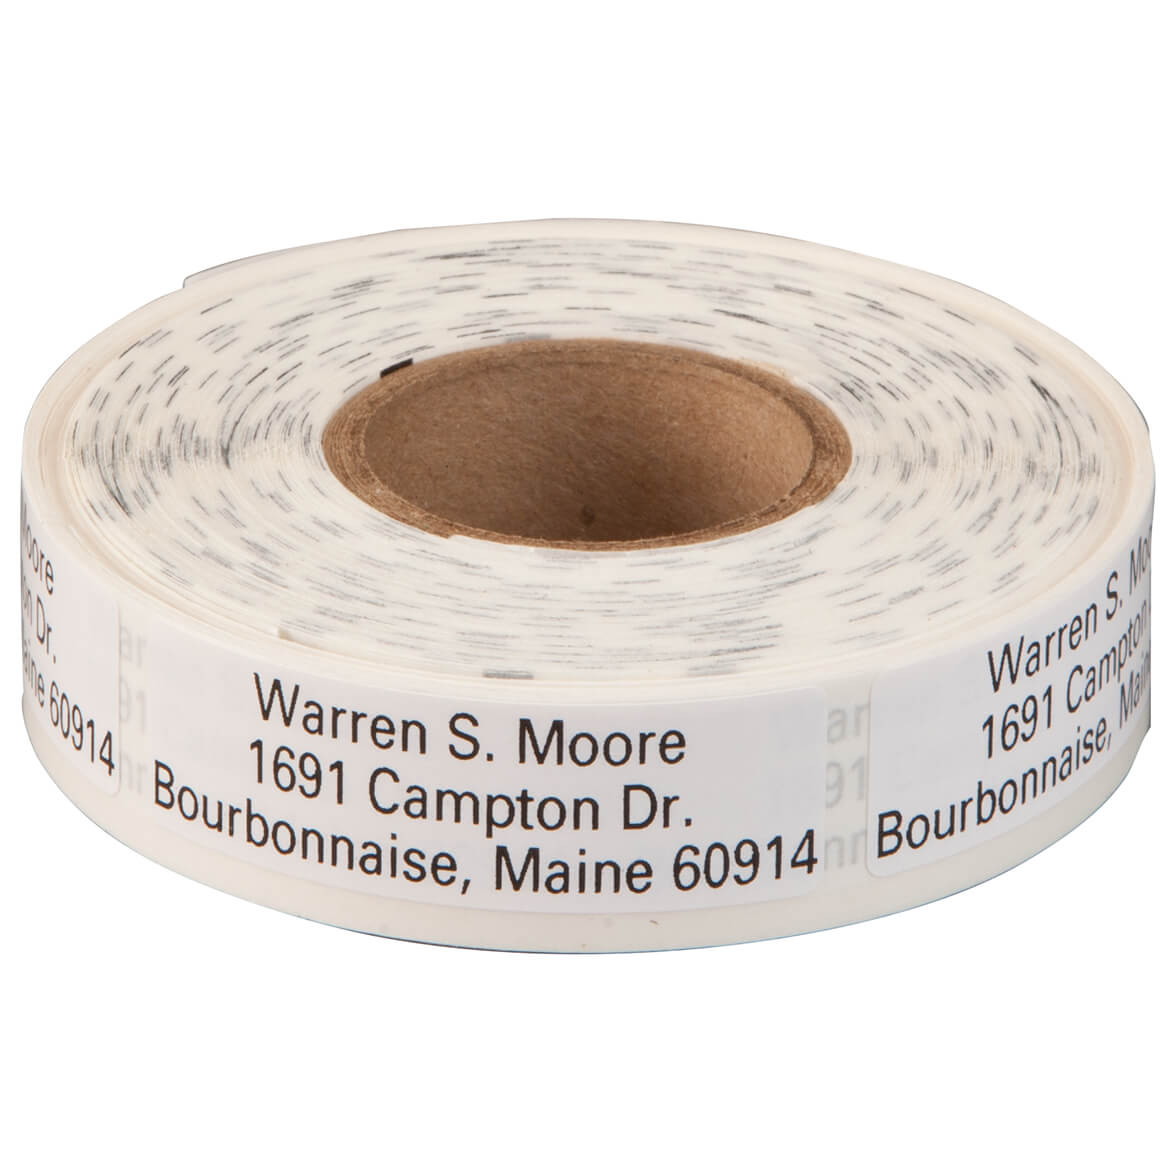 500 self adhesive White Address Labels Postage Label roll Sticky Stick 100x150mm